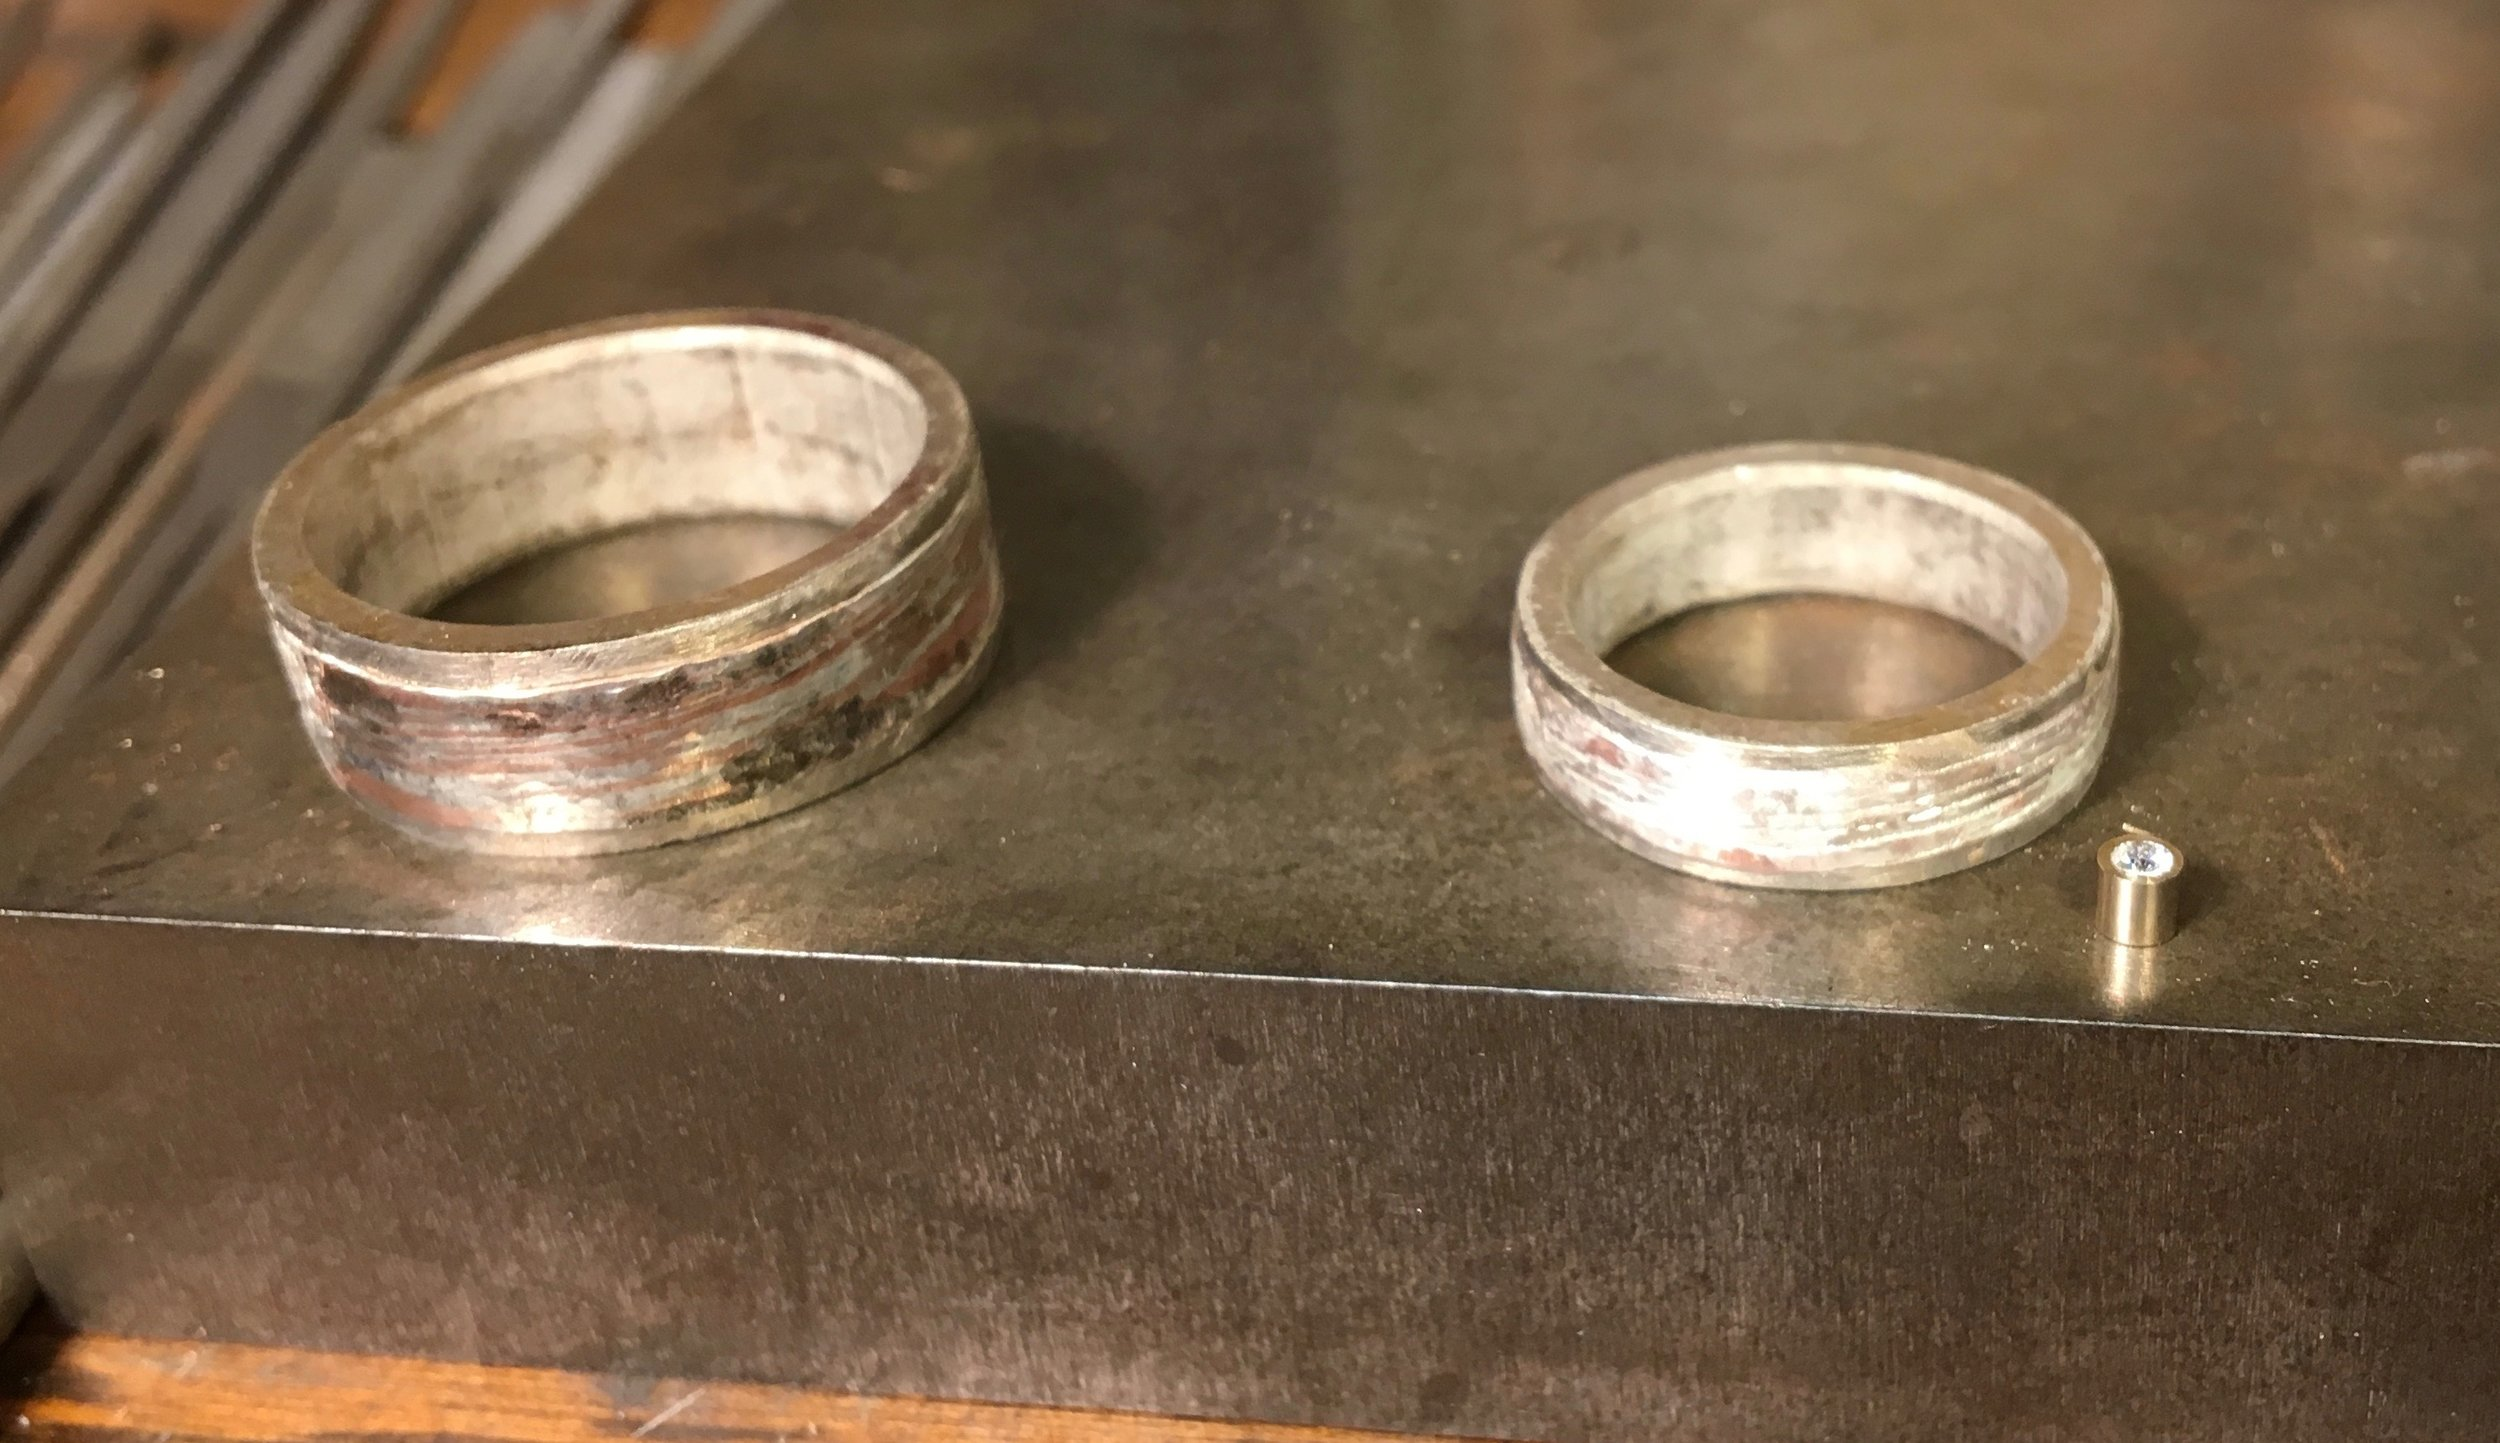 Then soldered in place.... Here the rings are shown with a 14k white gold bezel and diamond that is due to be put into Jayne's ring.